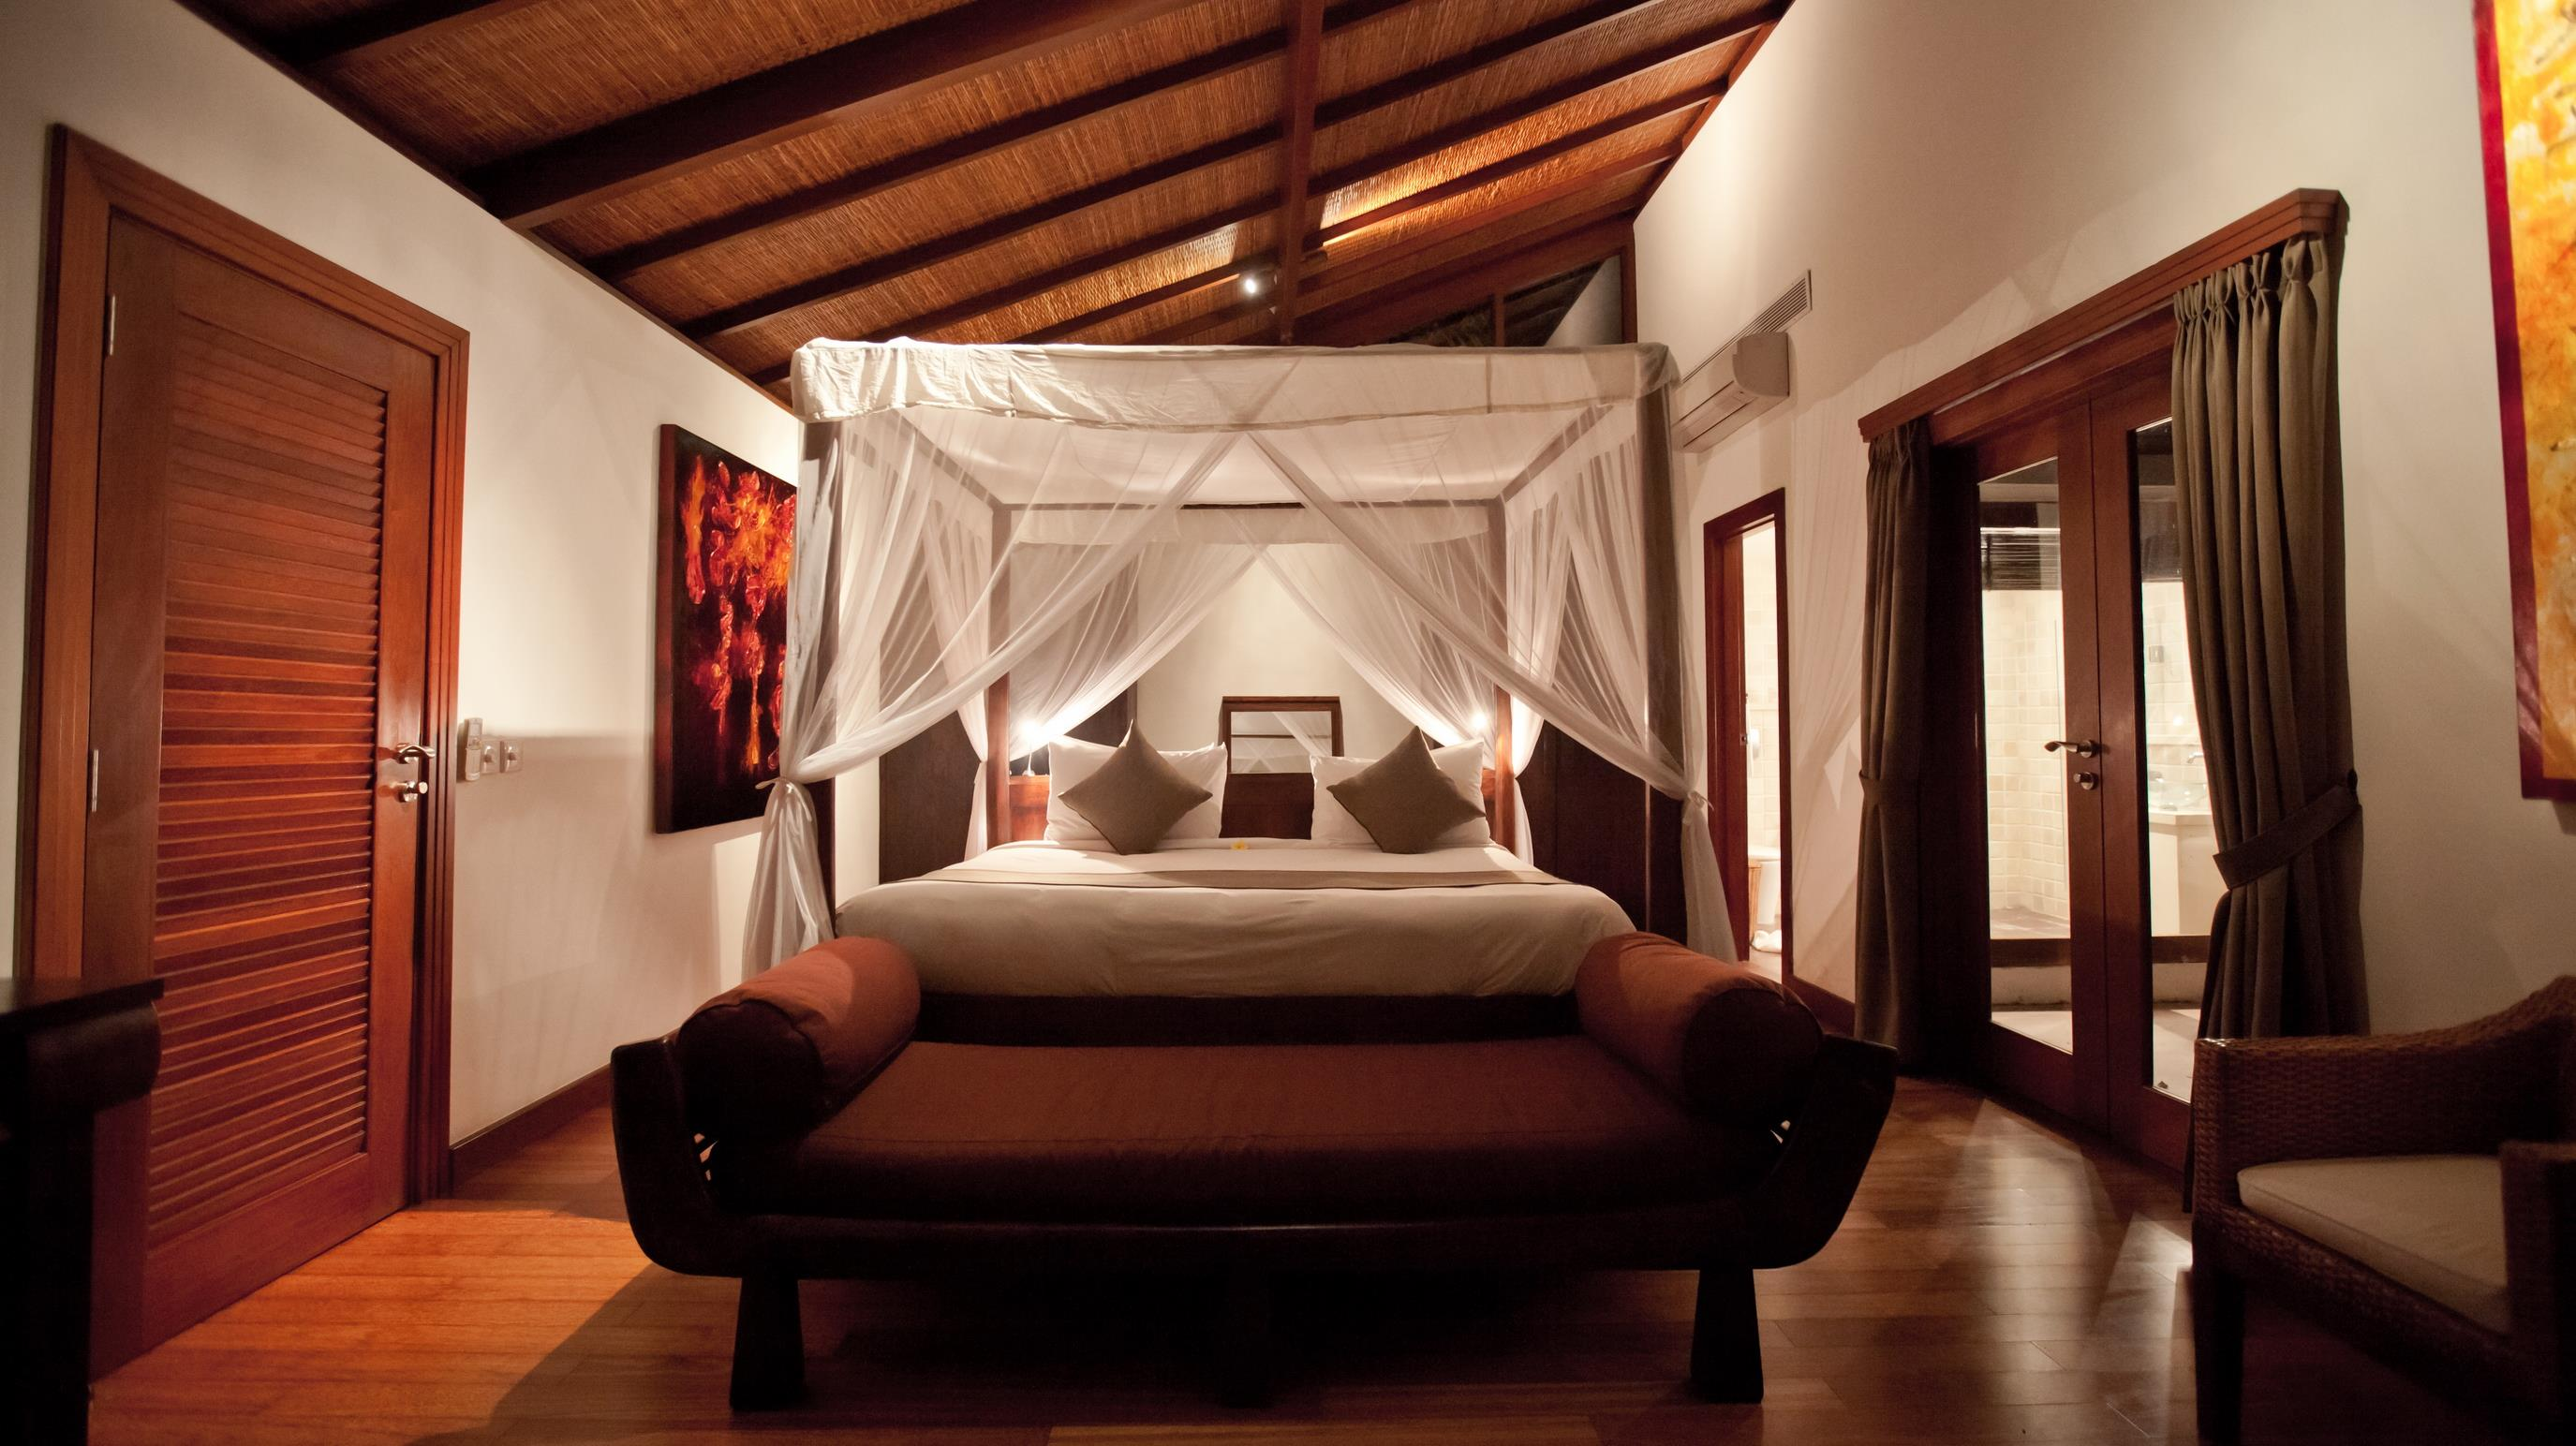 Bedroom with Seating Area - Villa Casis - Sanur, Bali